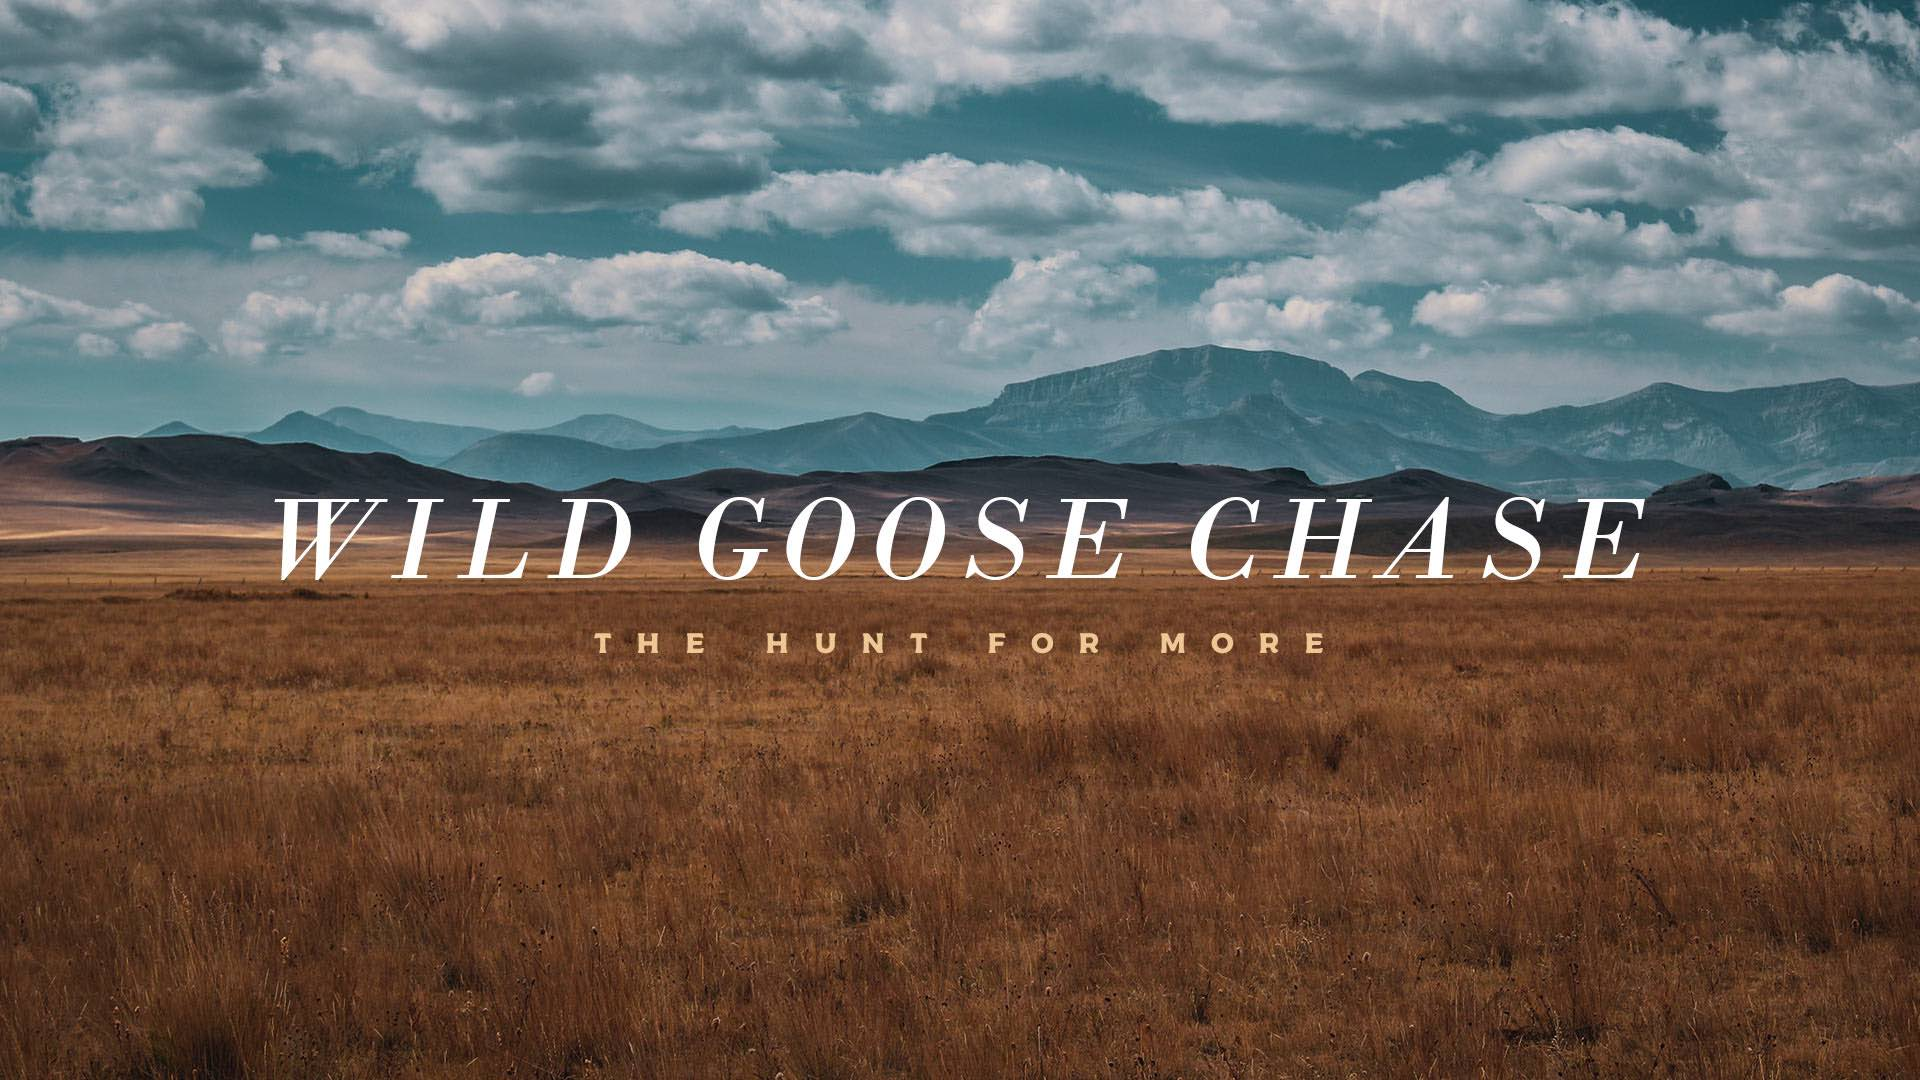 Wild Goose Chase: The Hunt for More